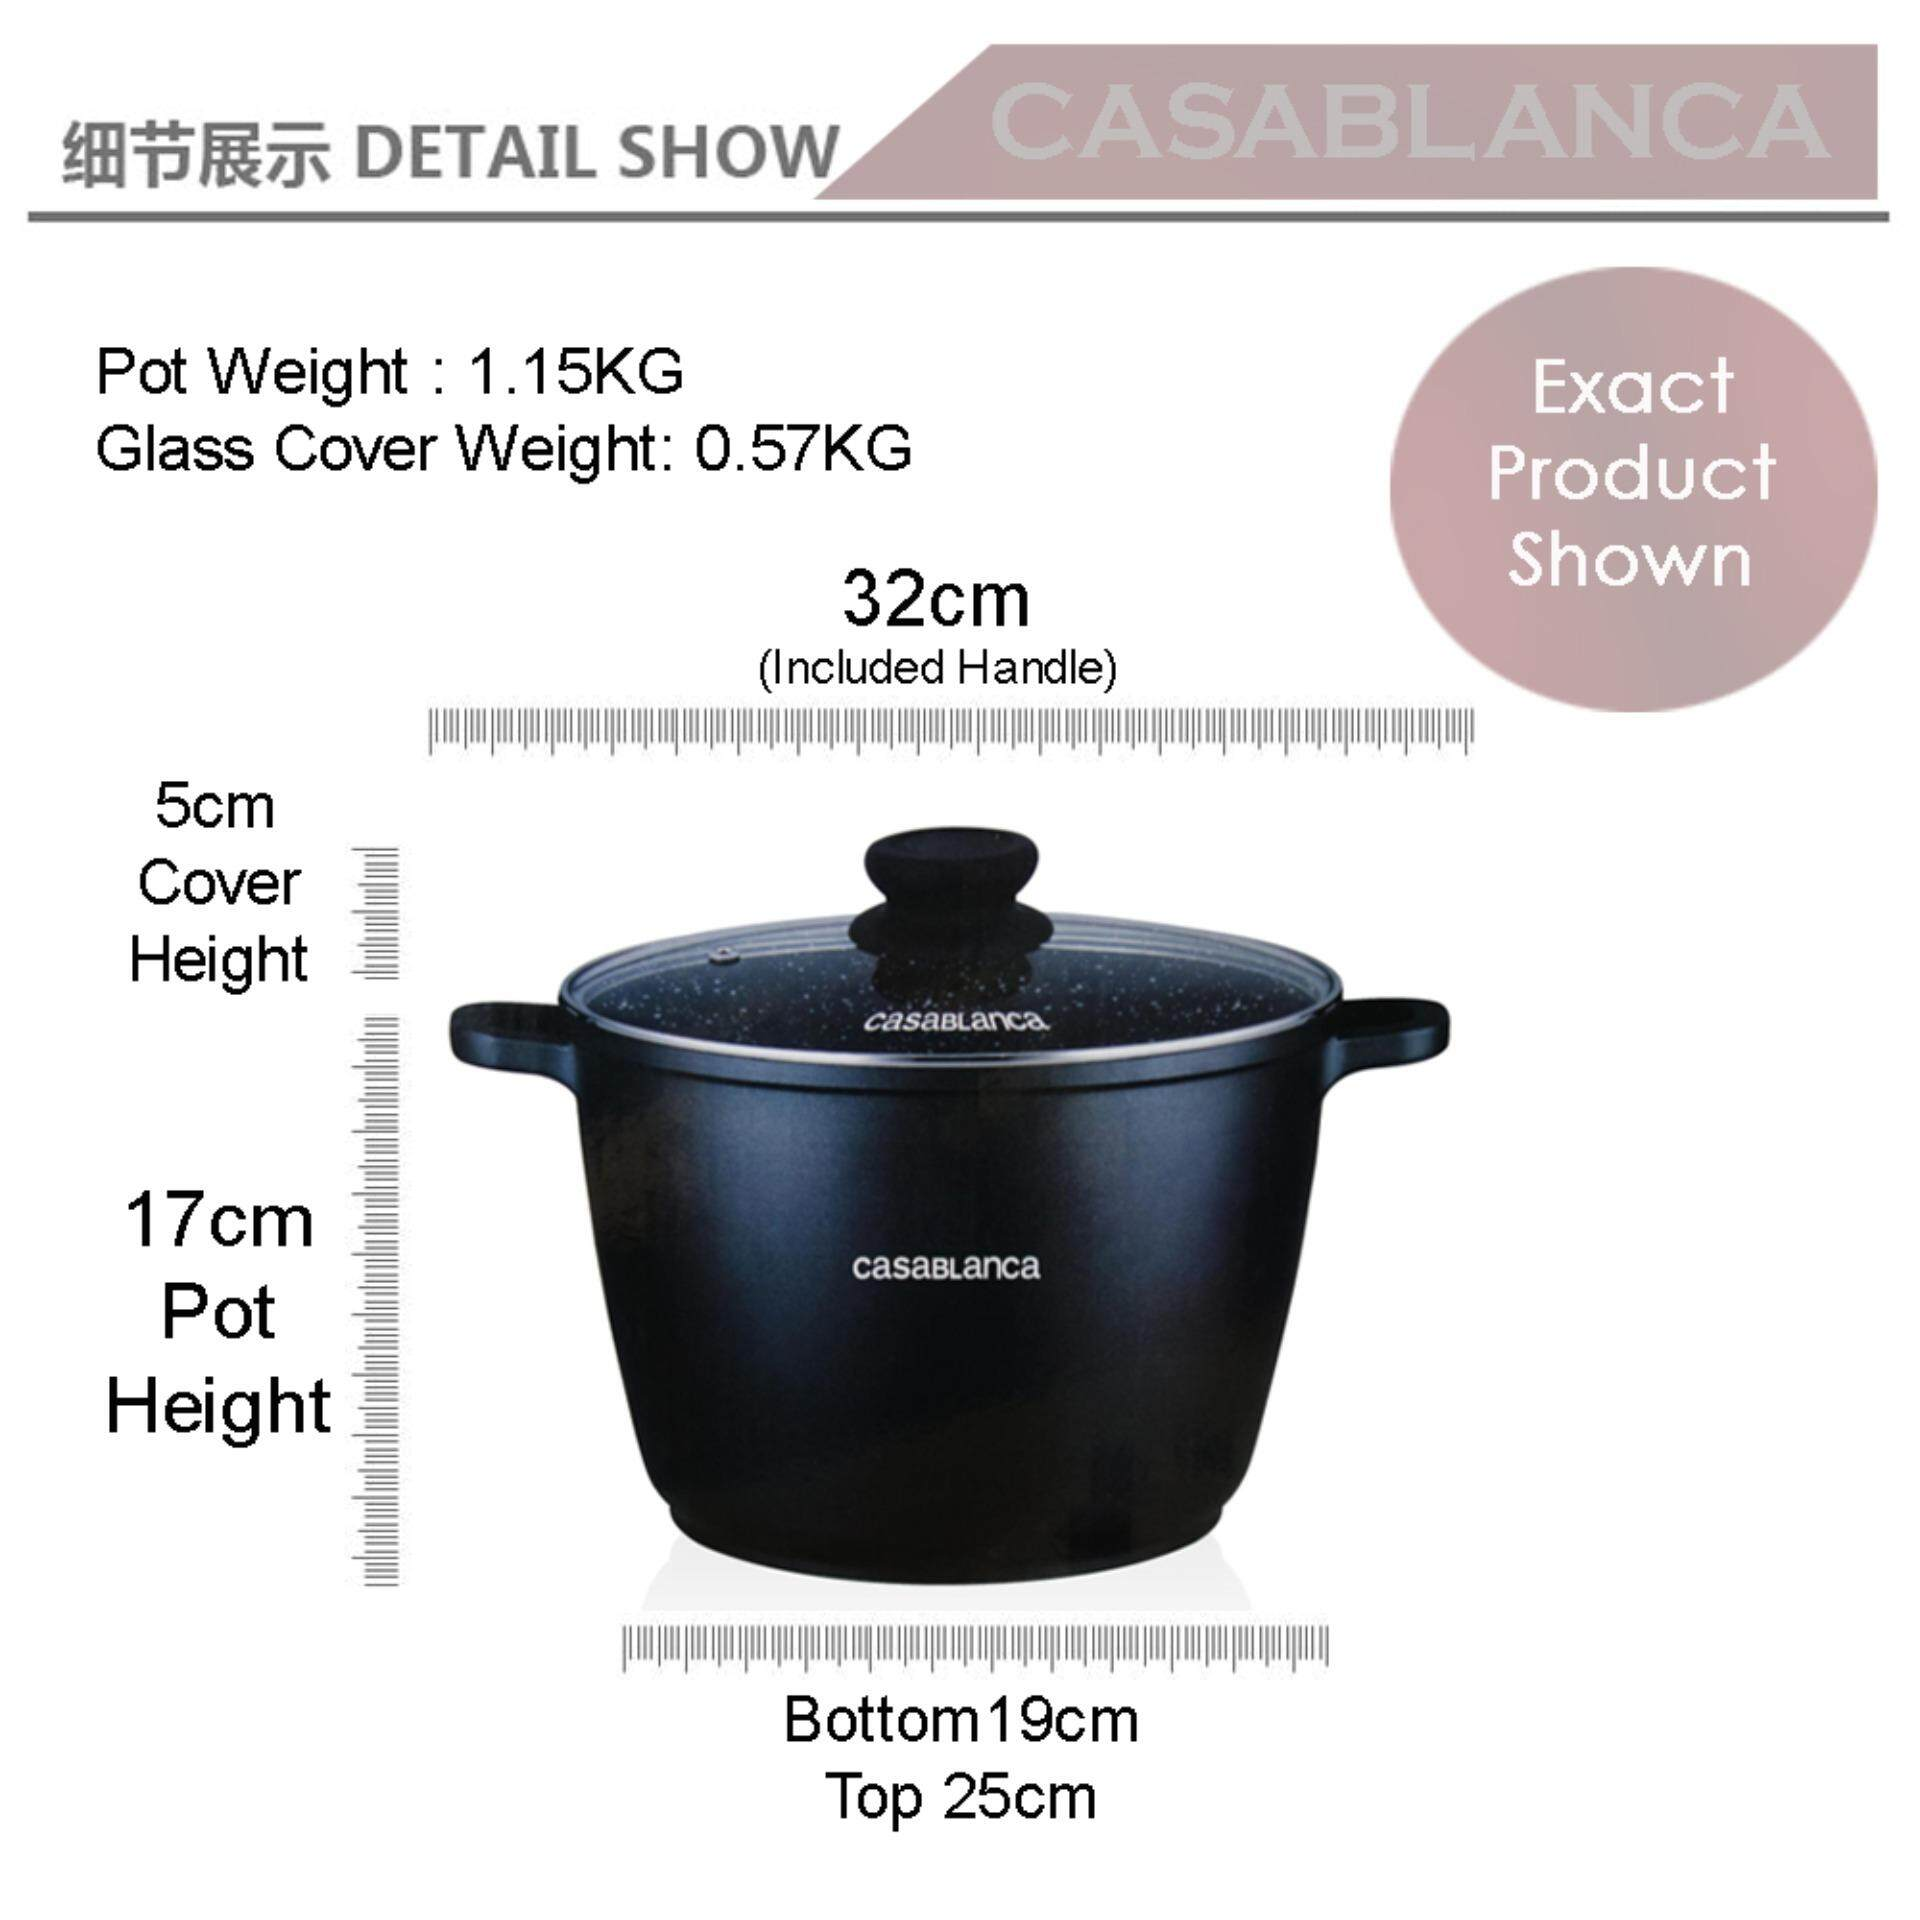 [Ready Stock]Casablanca 5 Layer Aluminium Cast Non Stick Marble Coated Cooking Pot [Fast Delivery]